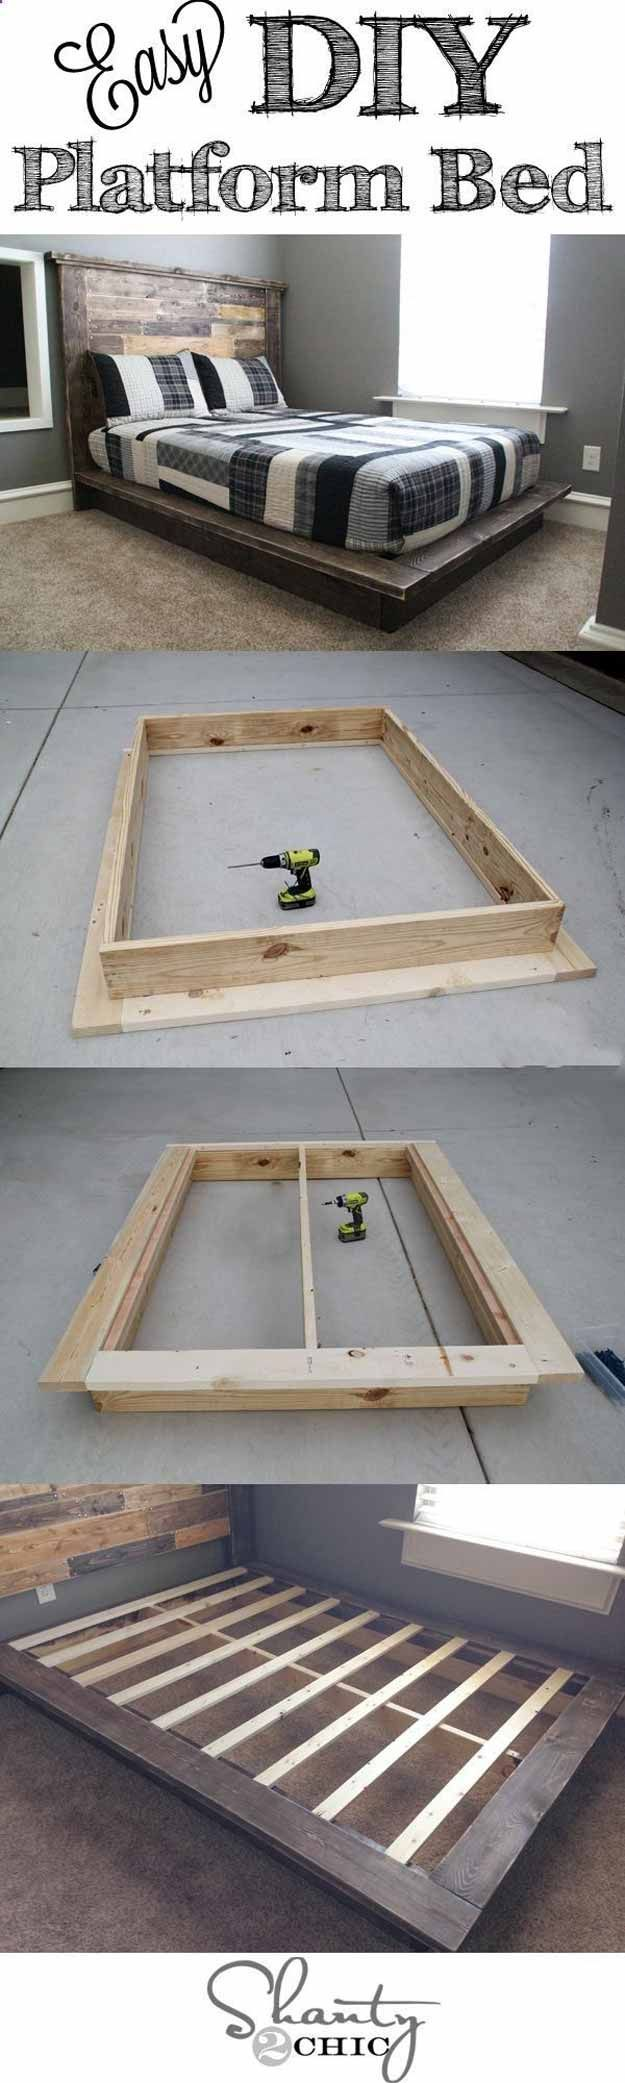 Easy DIY Platform Bed | Creative Pieces Of Wood For A New Bedroom With A Storage…